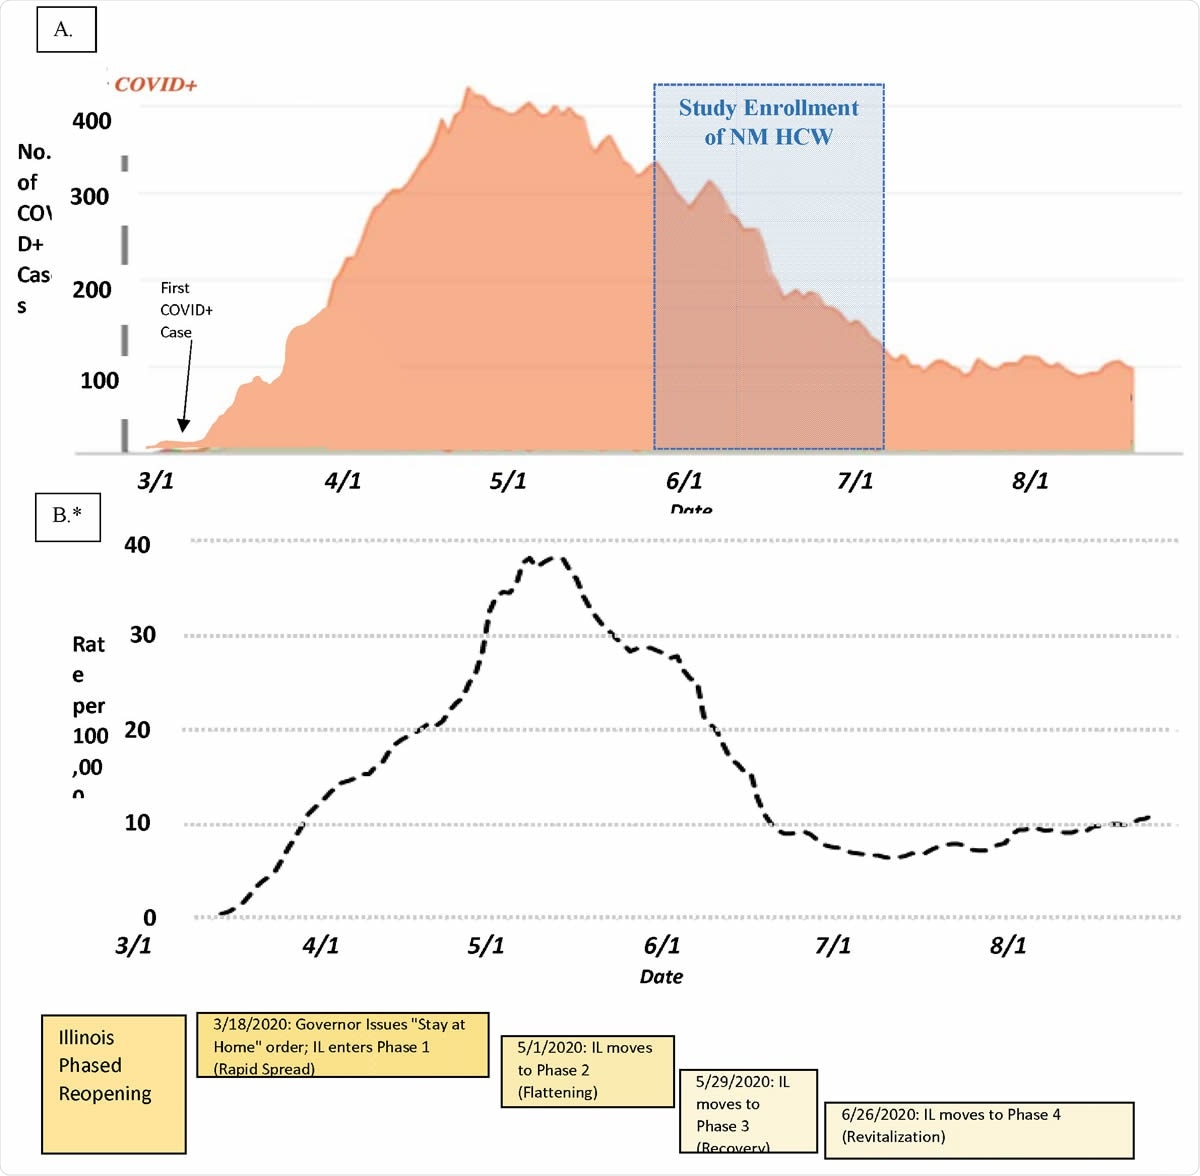 Timeline of Northwestern Medicine COVID-19 Inpatient Census, Chicago Case Rate, and state government response during the local accelerated phase of the pandemic